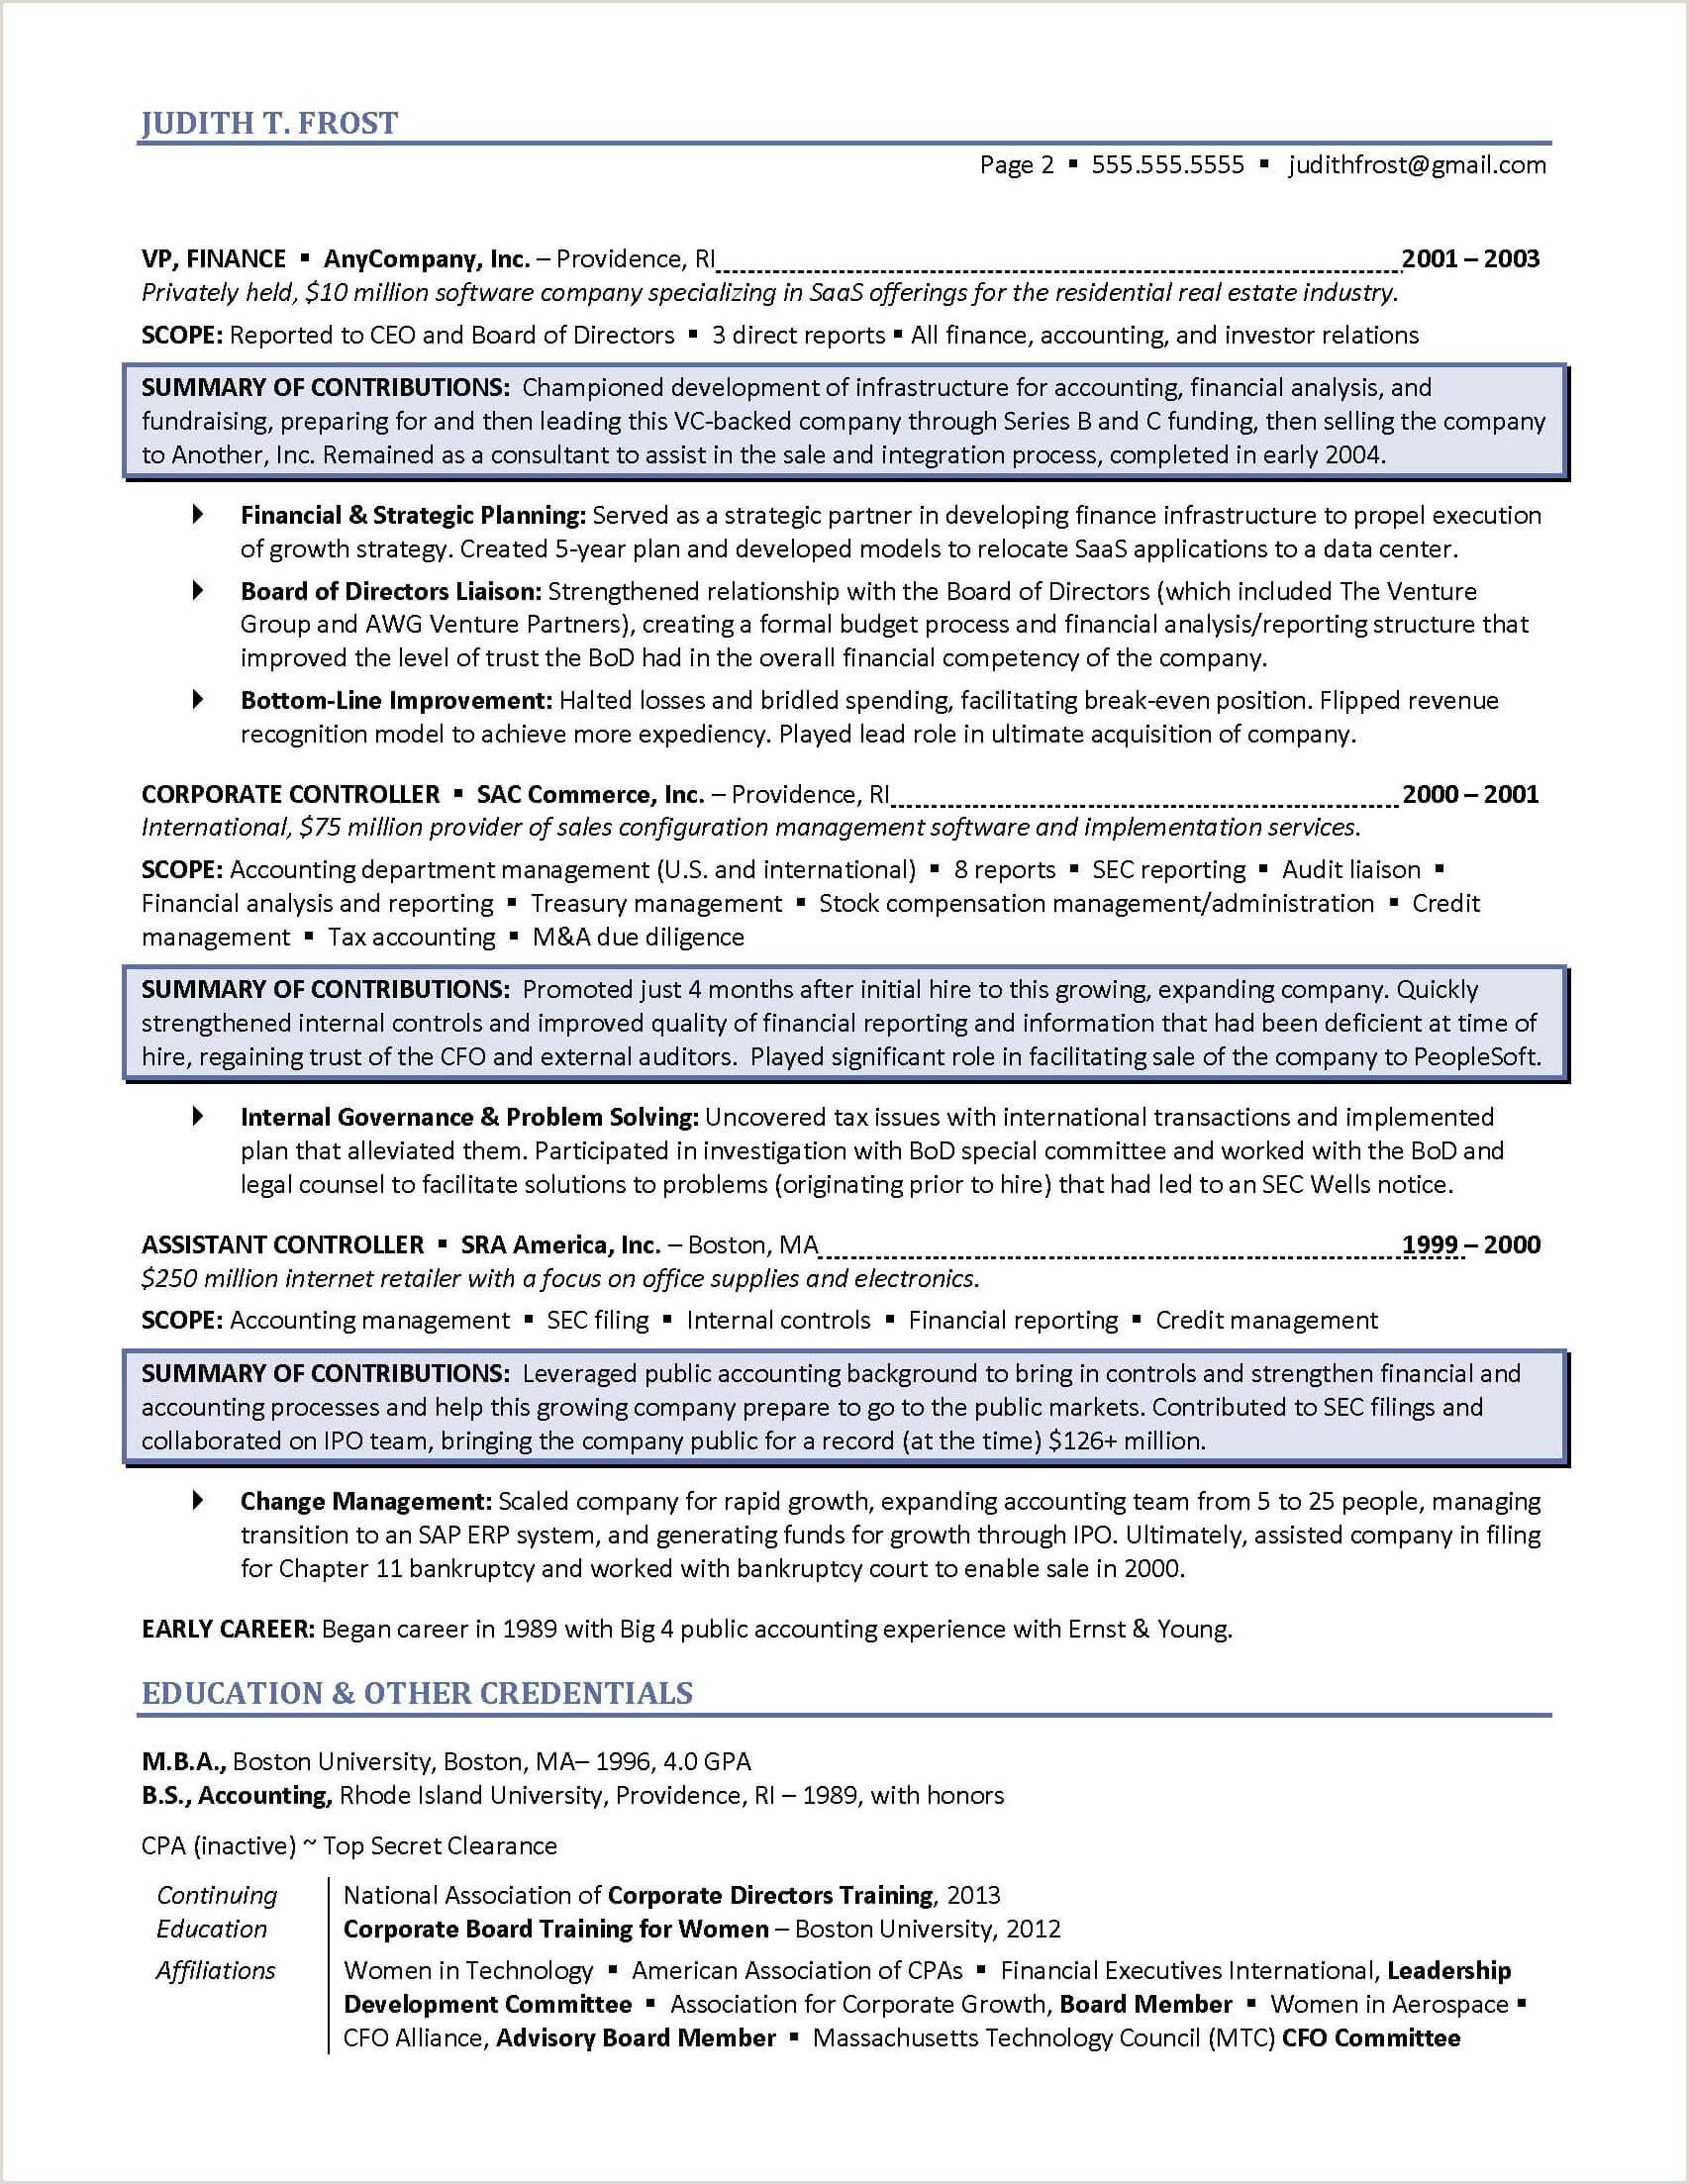 Cv format for Finance Job Board Of Directors Resume Example for Corporate or Nonprofit